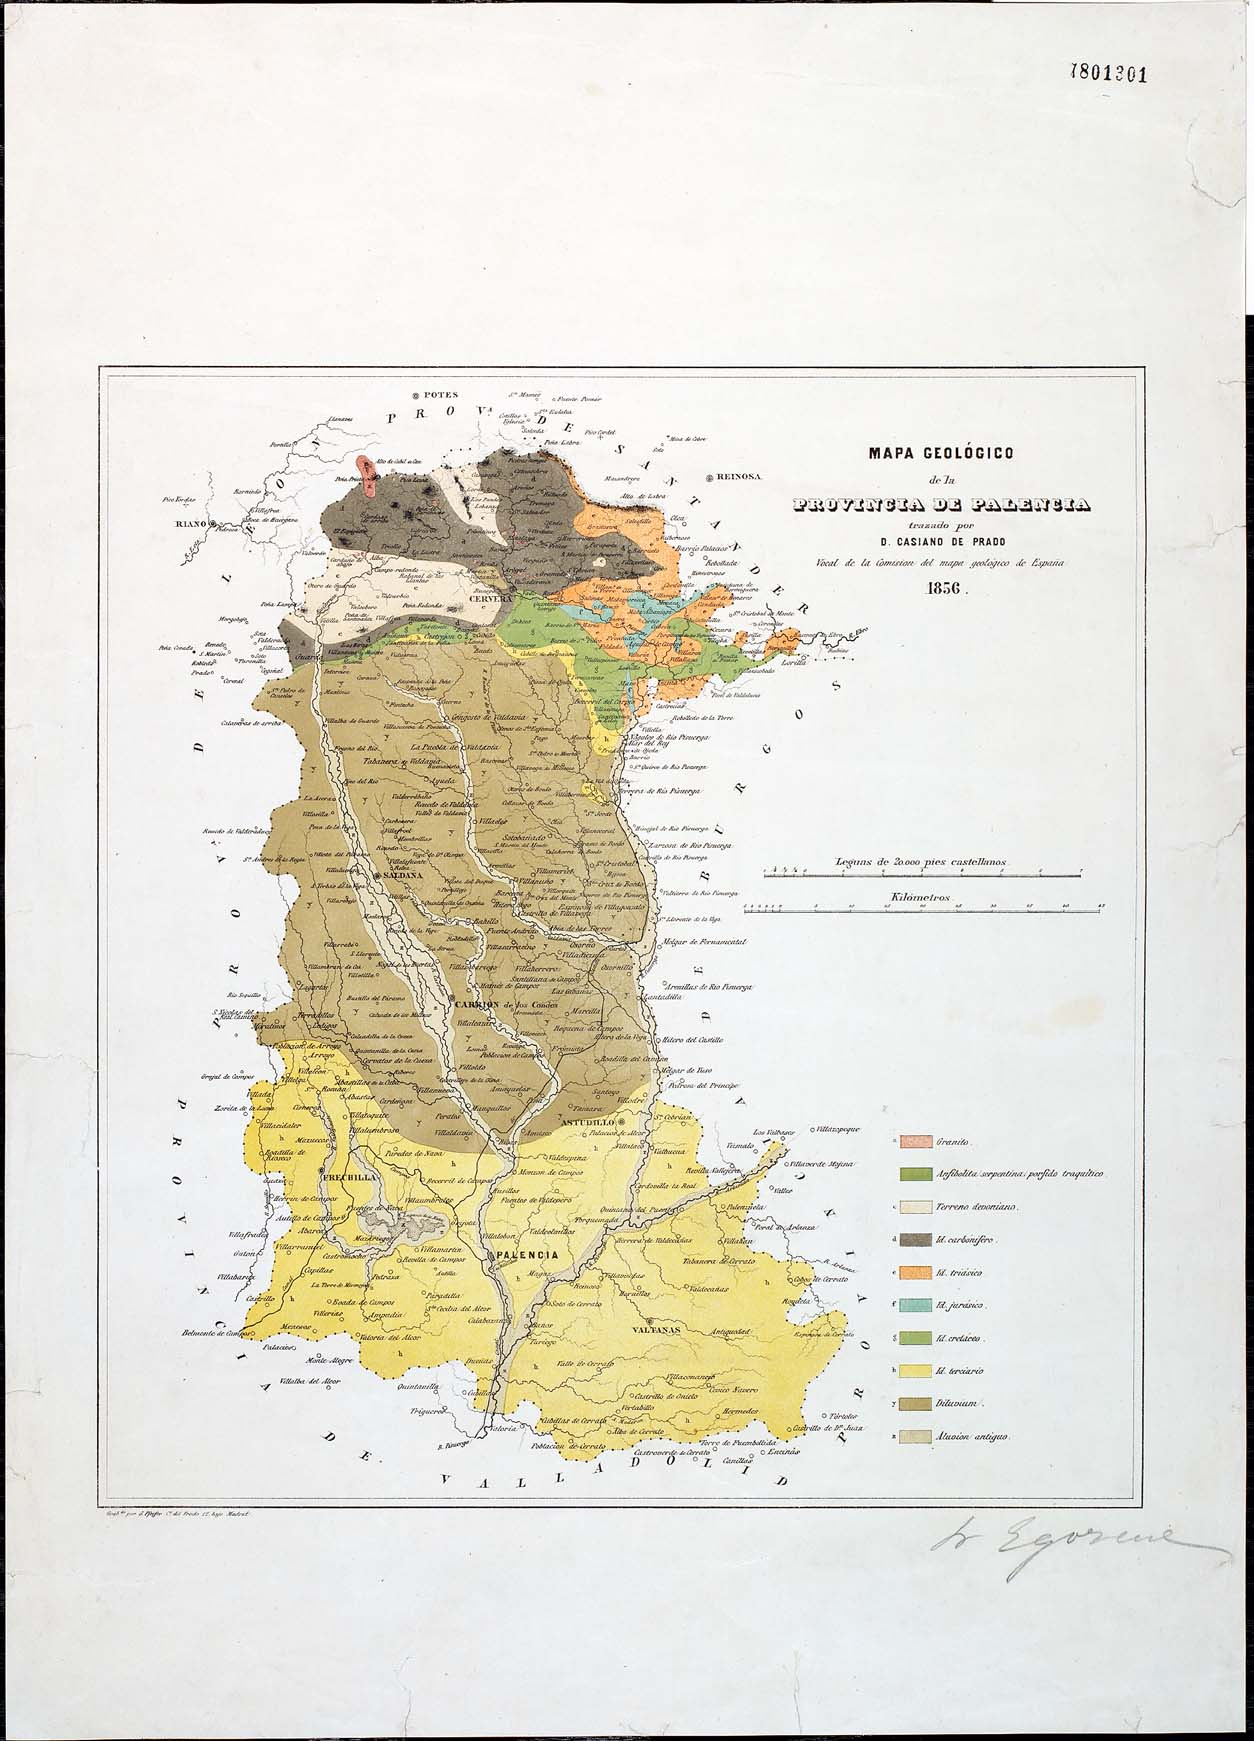 Geological map of the Province of Palencia 1856